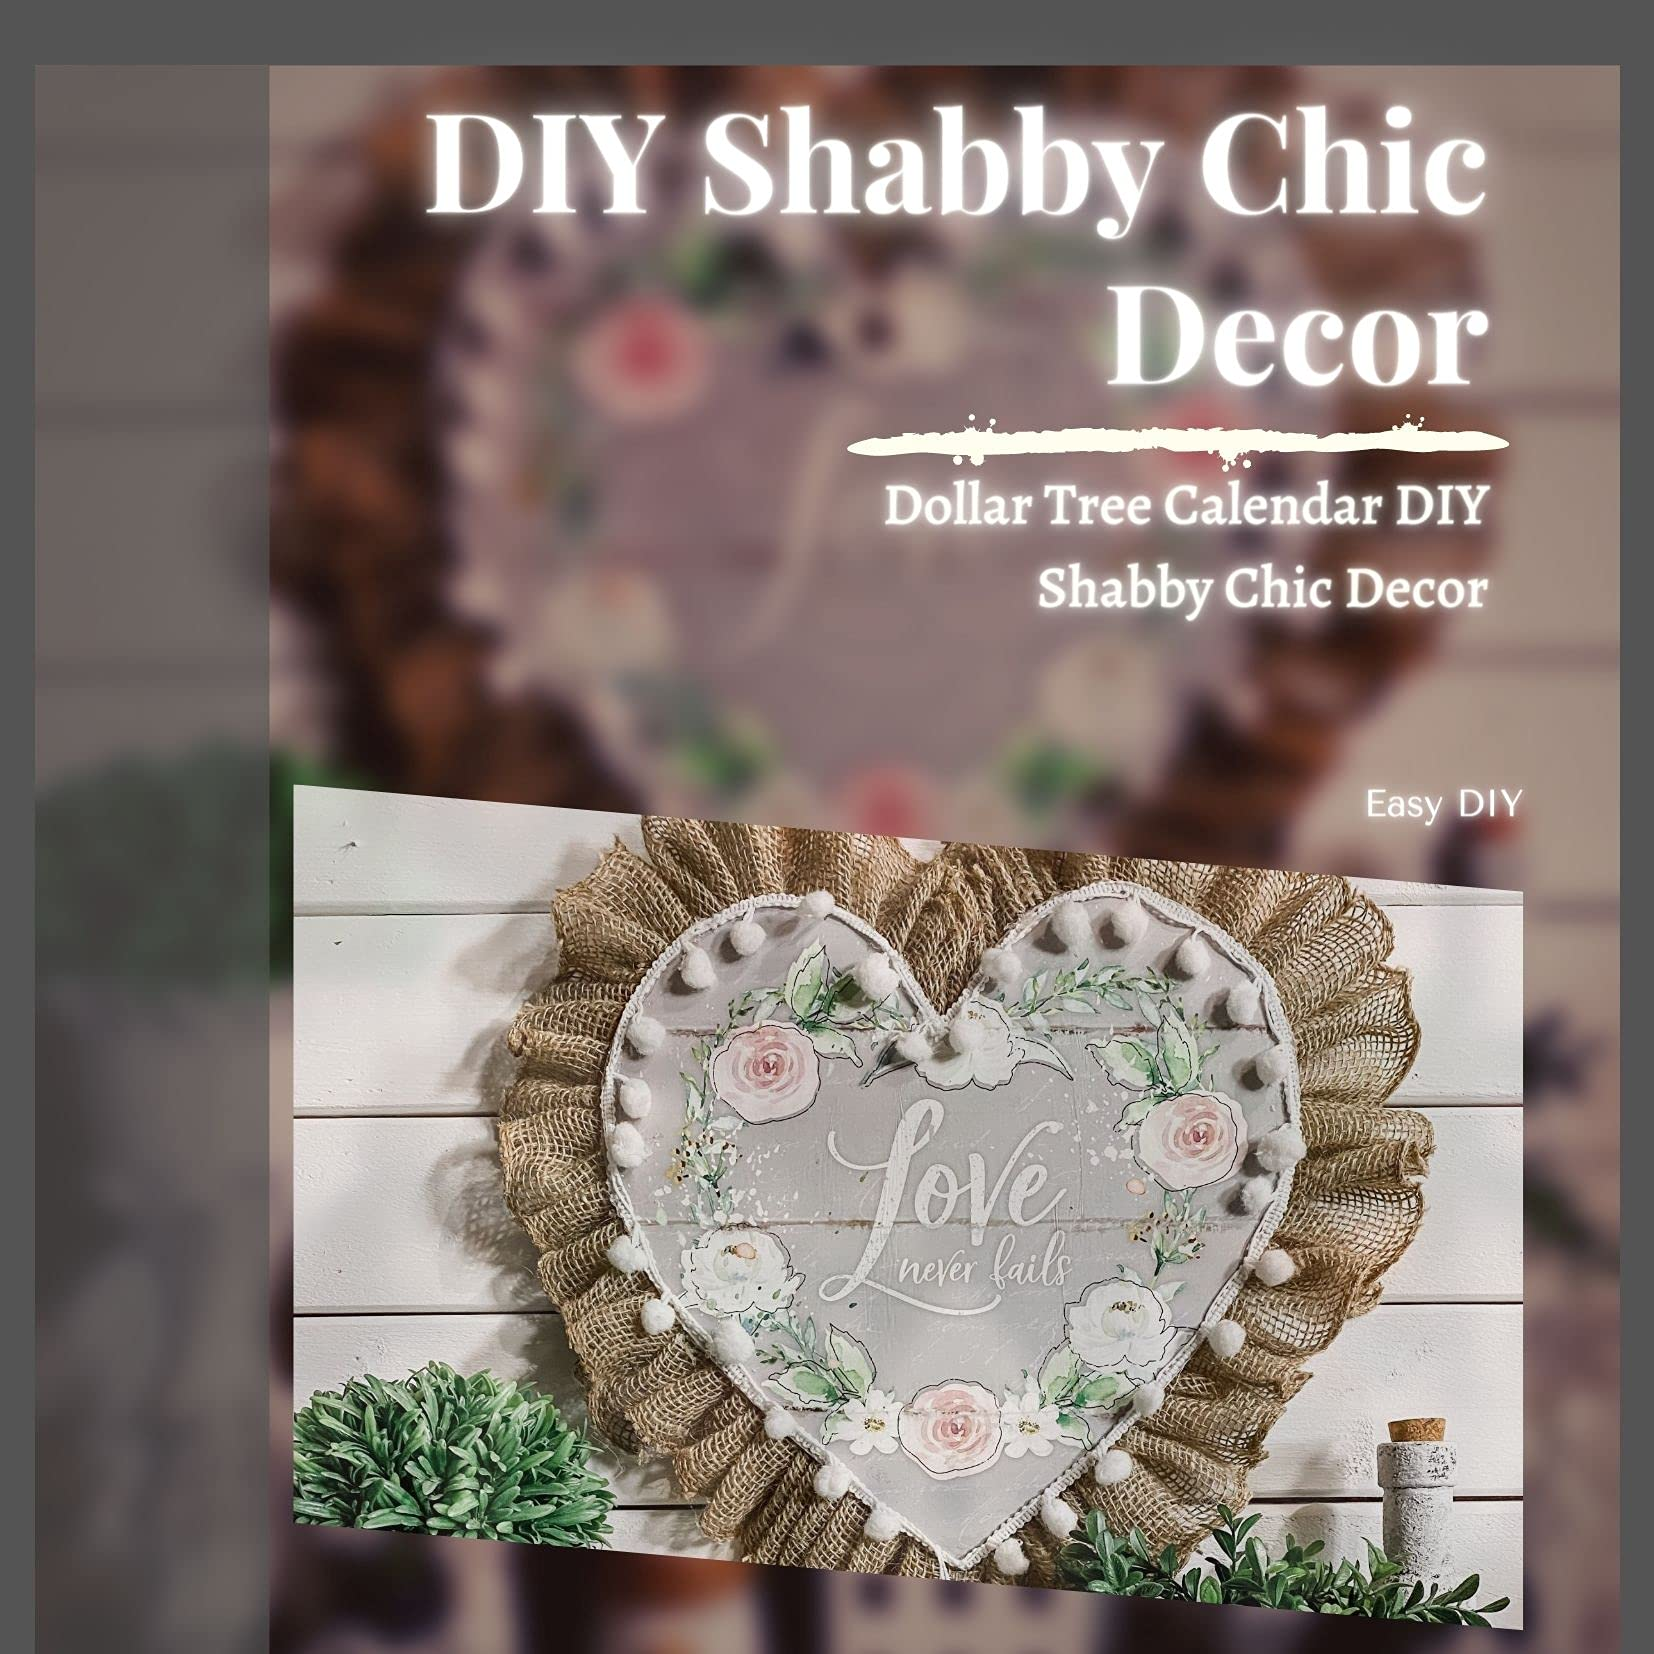 So if you love shabby chic, here are some shabby chic decorating ideas you can start working on. Diy Shabby Chic Decor Dollar Tree Calendar Diy Shabby Chic Decor By Easy Diy